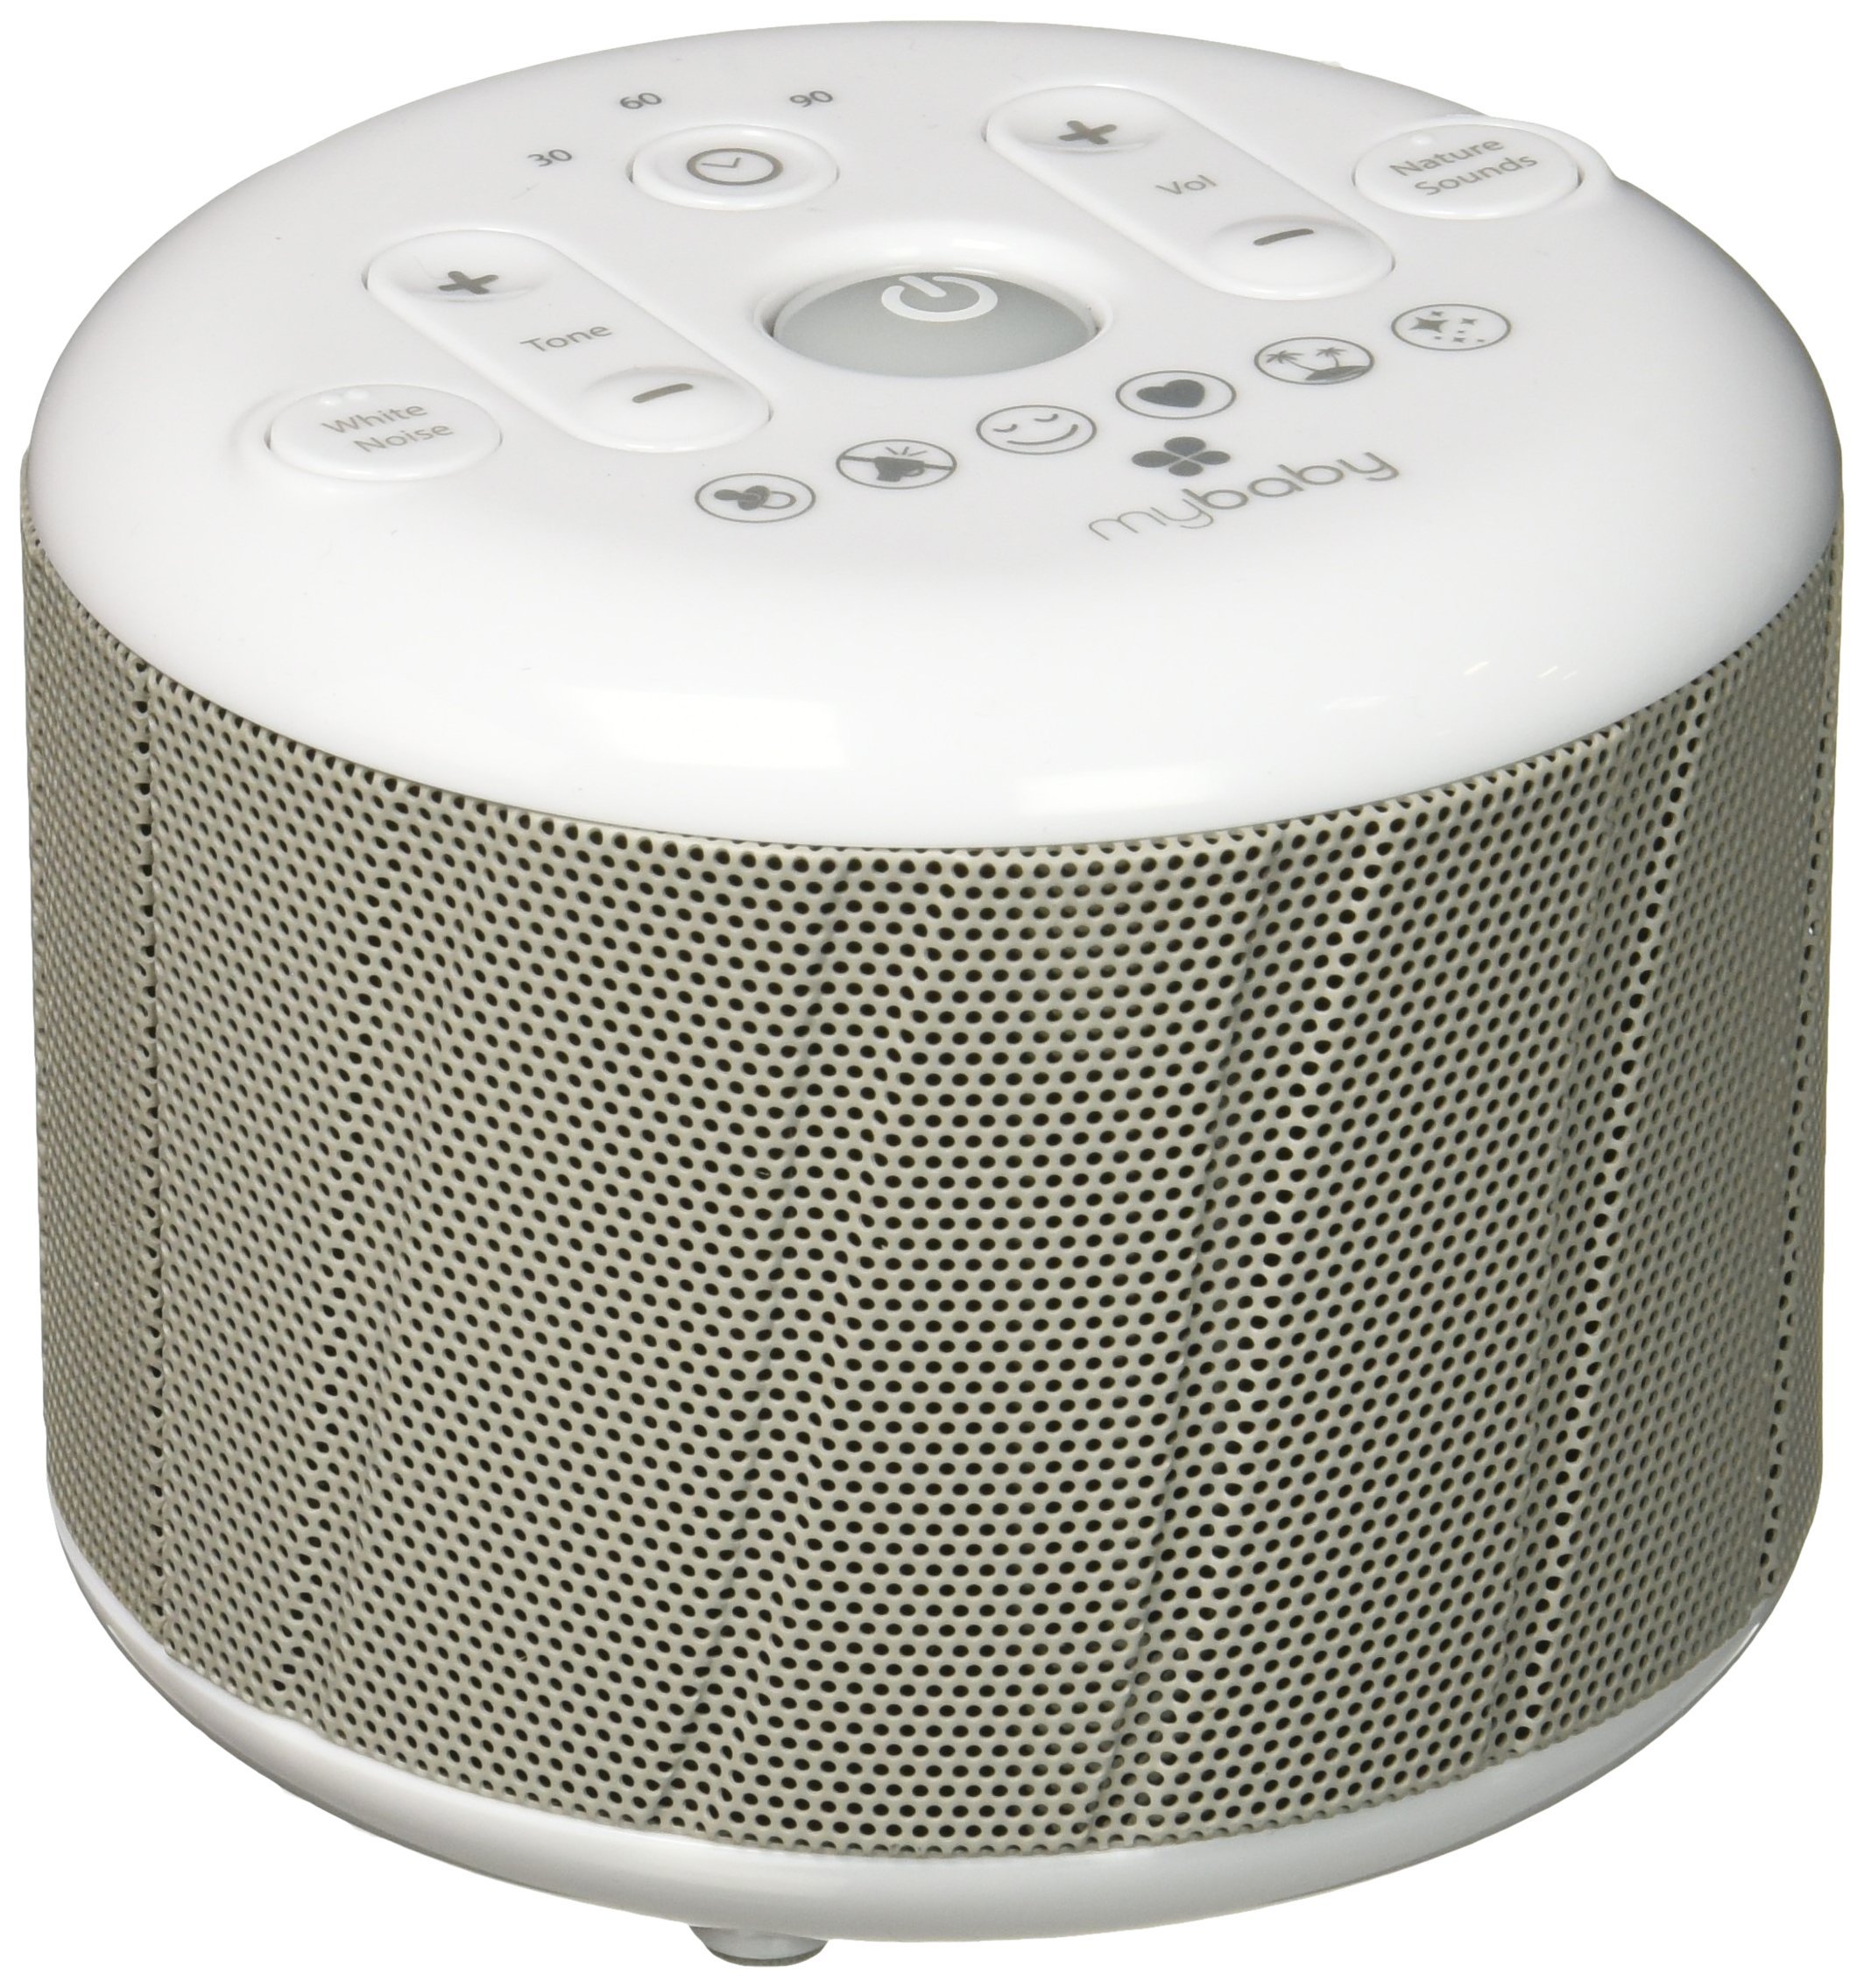 myBaby Deep Sleep SoundSpa White Noise Machine, Plays 6 Sounds, Heartbeat, Sooth, Mask, Calm, Ocean, Twinkle Twinkle, AC or 4AAA Battery Operated, Perfect for Naptime, MYB-D100